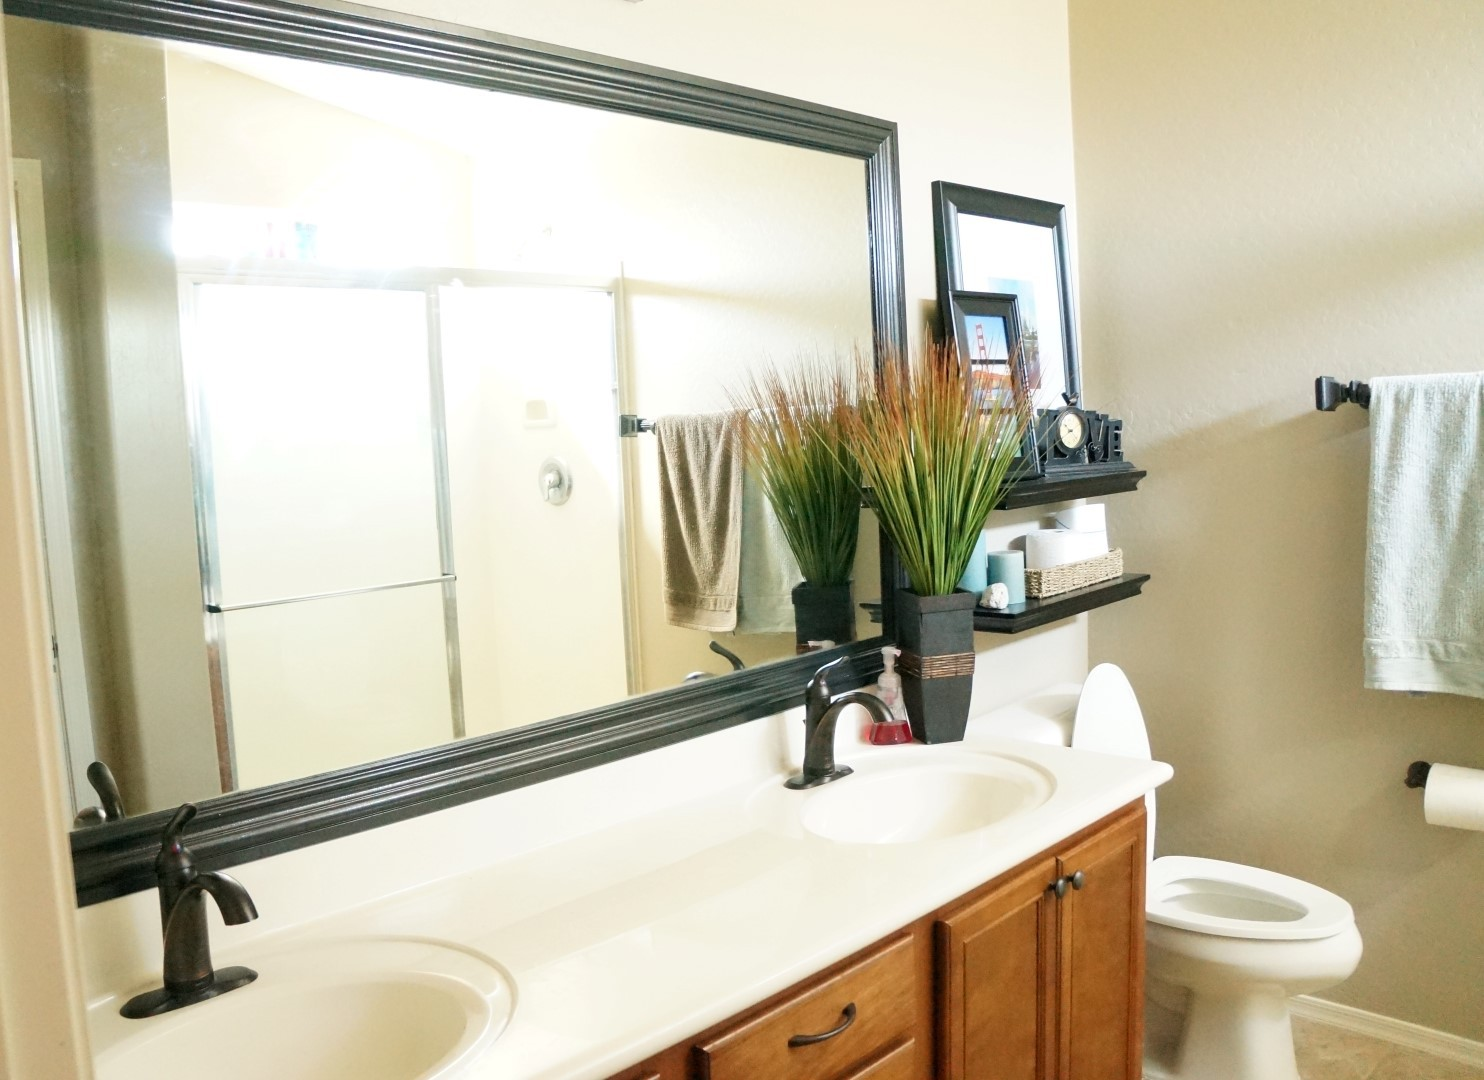 How To Frame A Large Bathroom Mirror How To Frame A Mirror The Builder 39s Installed A Mom 39s Take